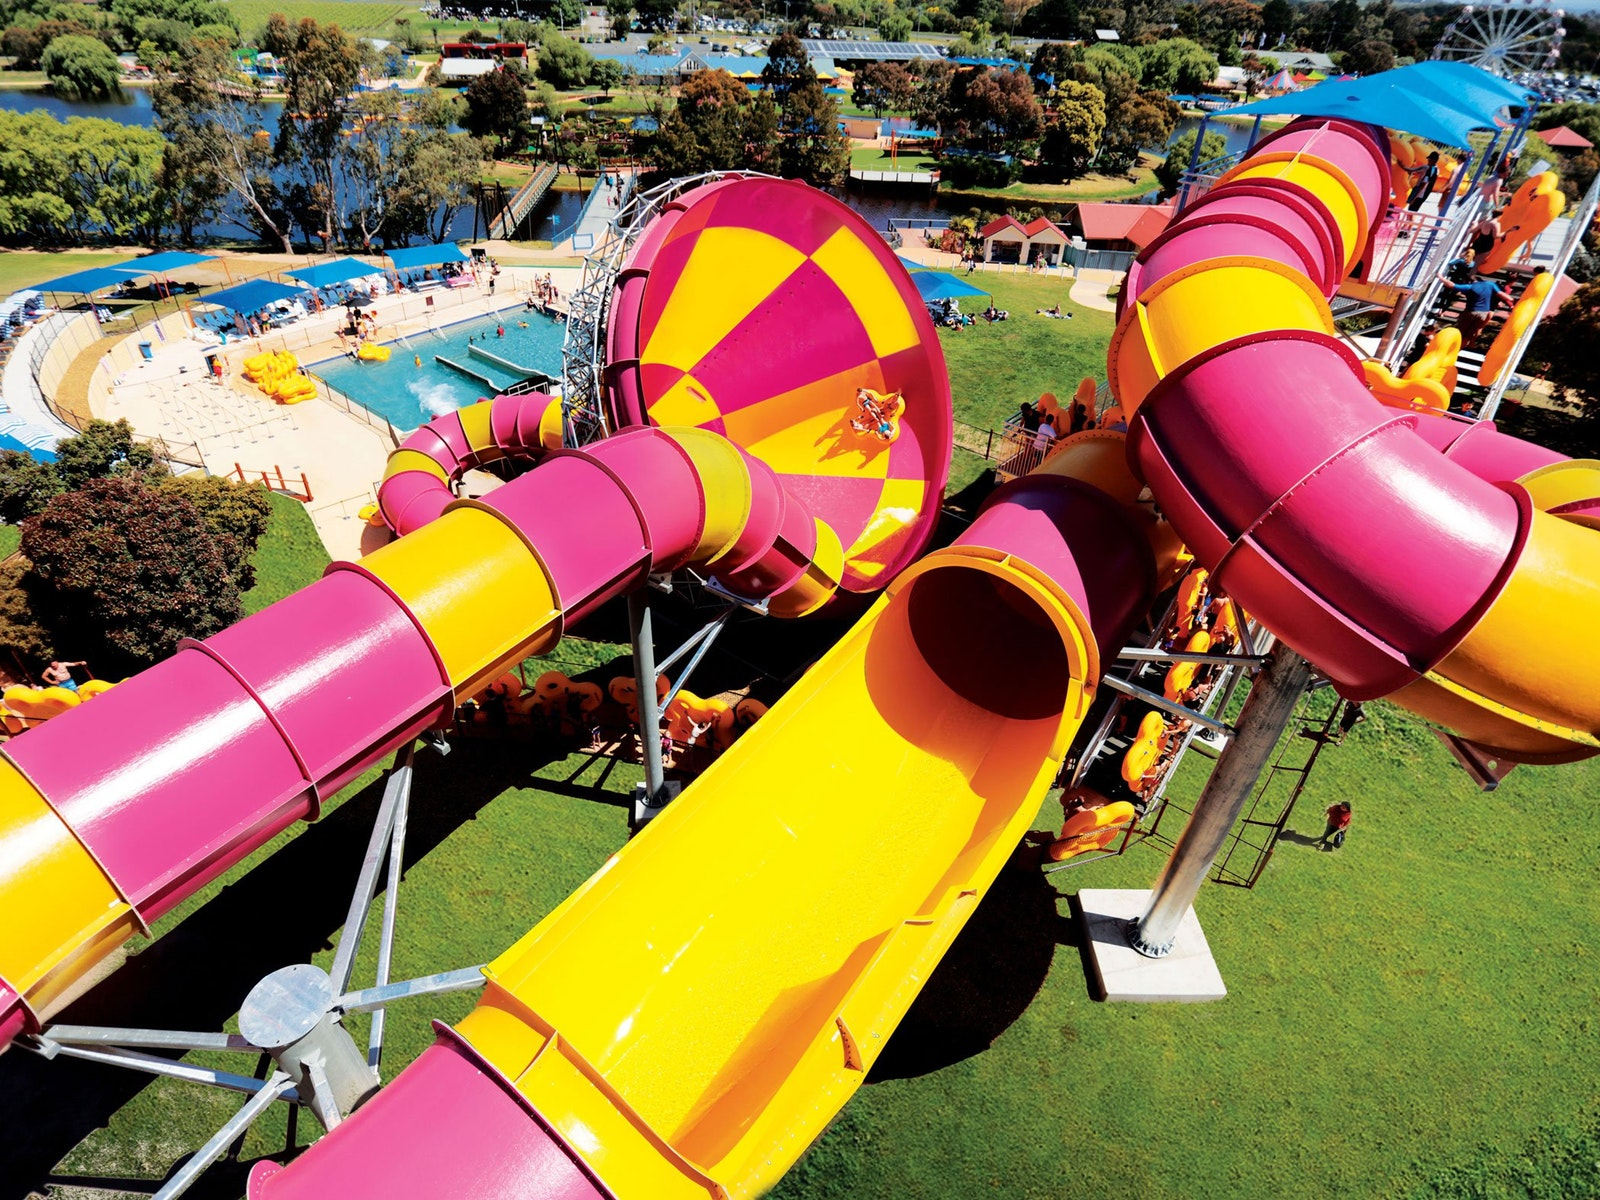 The Tornado waterslide